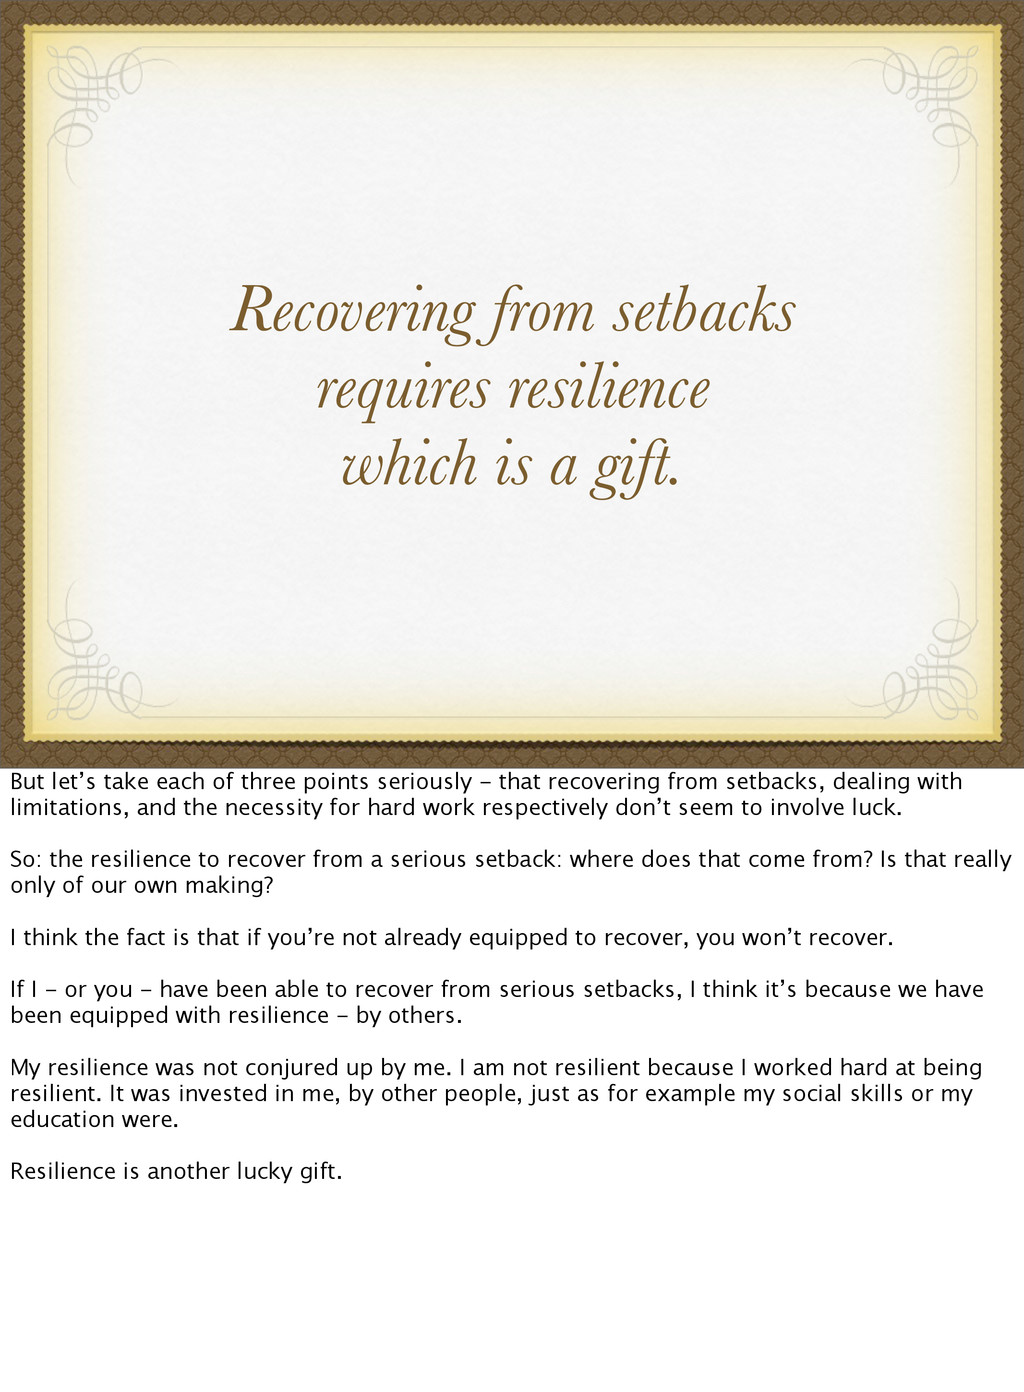 Recovering from setbacks requires resilience wh...